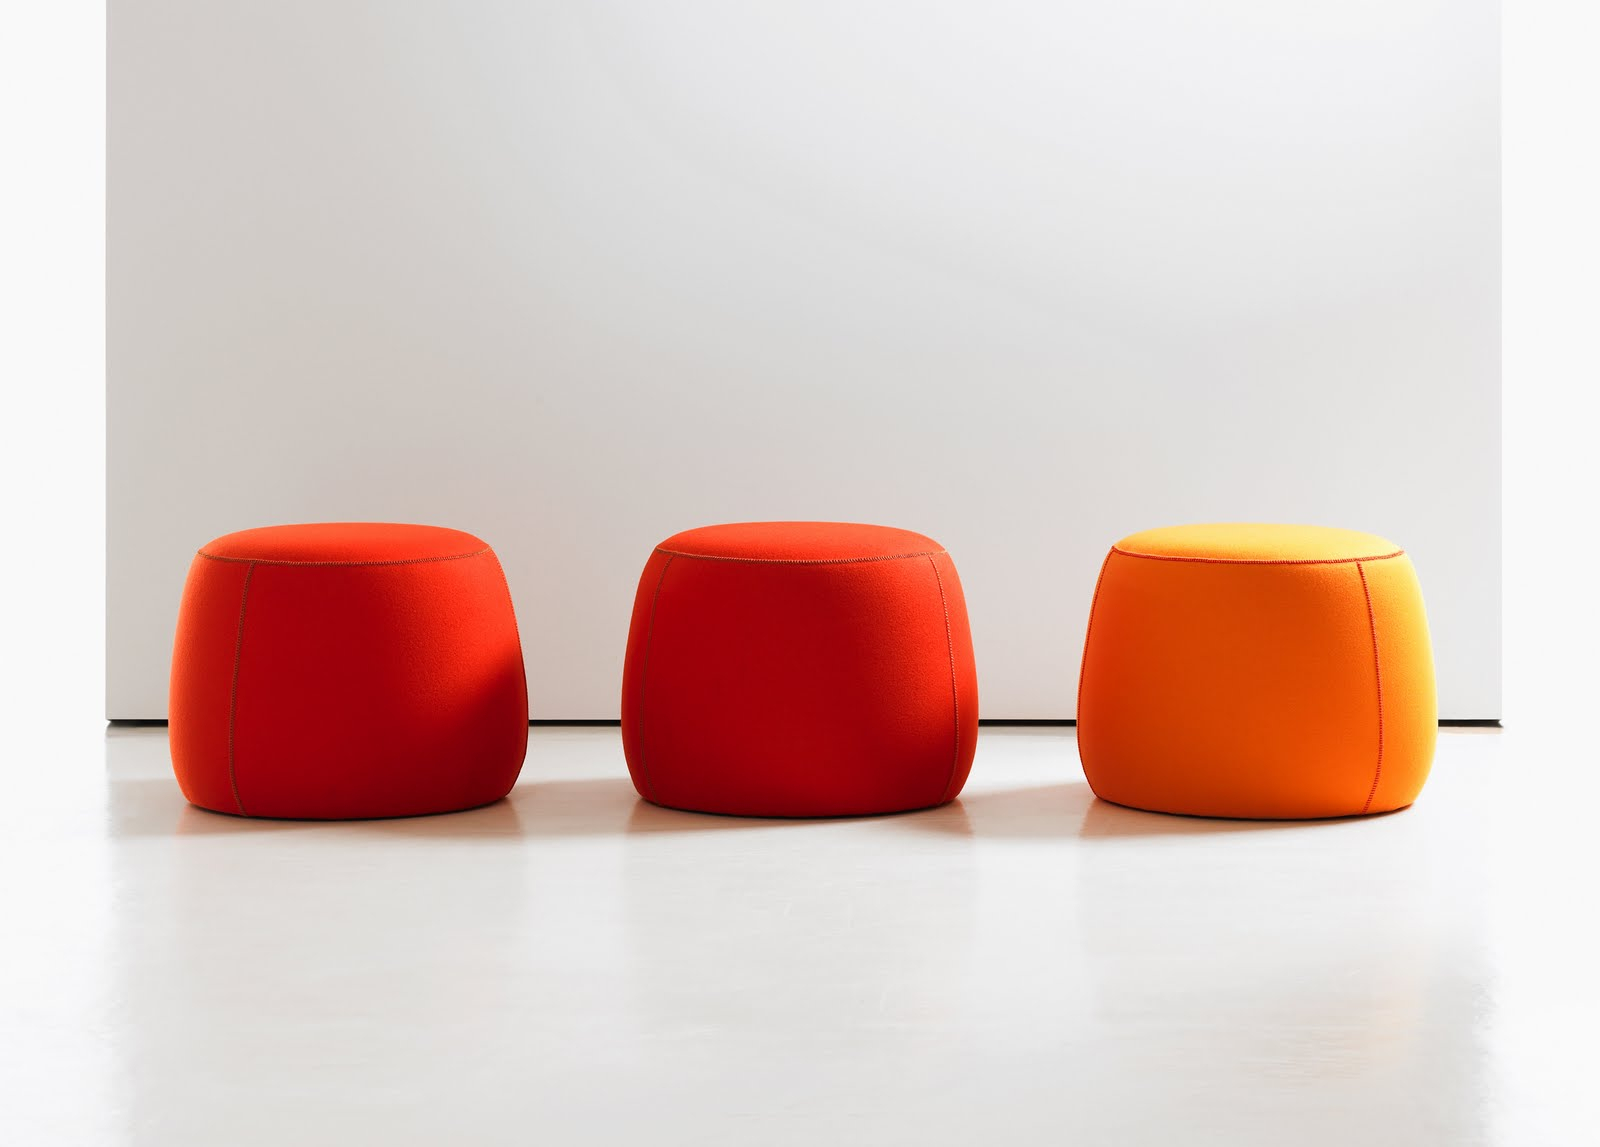 Objects Of Desire | K E R W I N Intended For Summer Desire Credenzas (View 17 of 30)